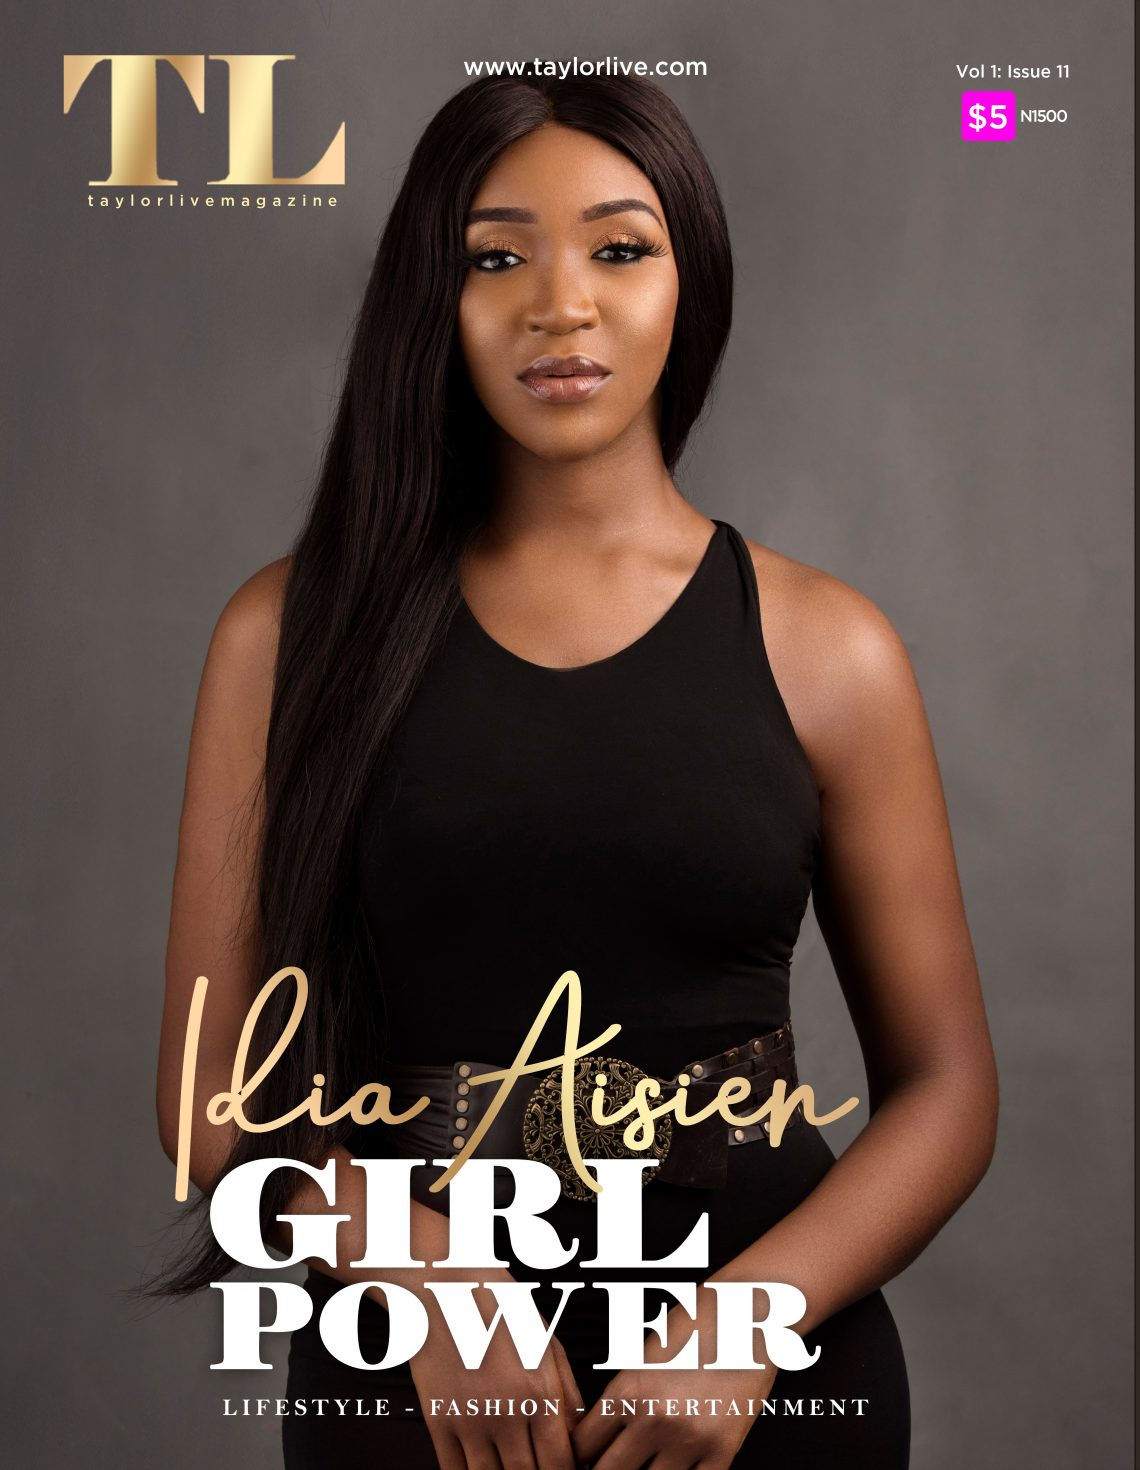 GIRL POWERIdia Aisien Covers Taylor Live Magazine's Latest Issue